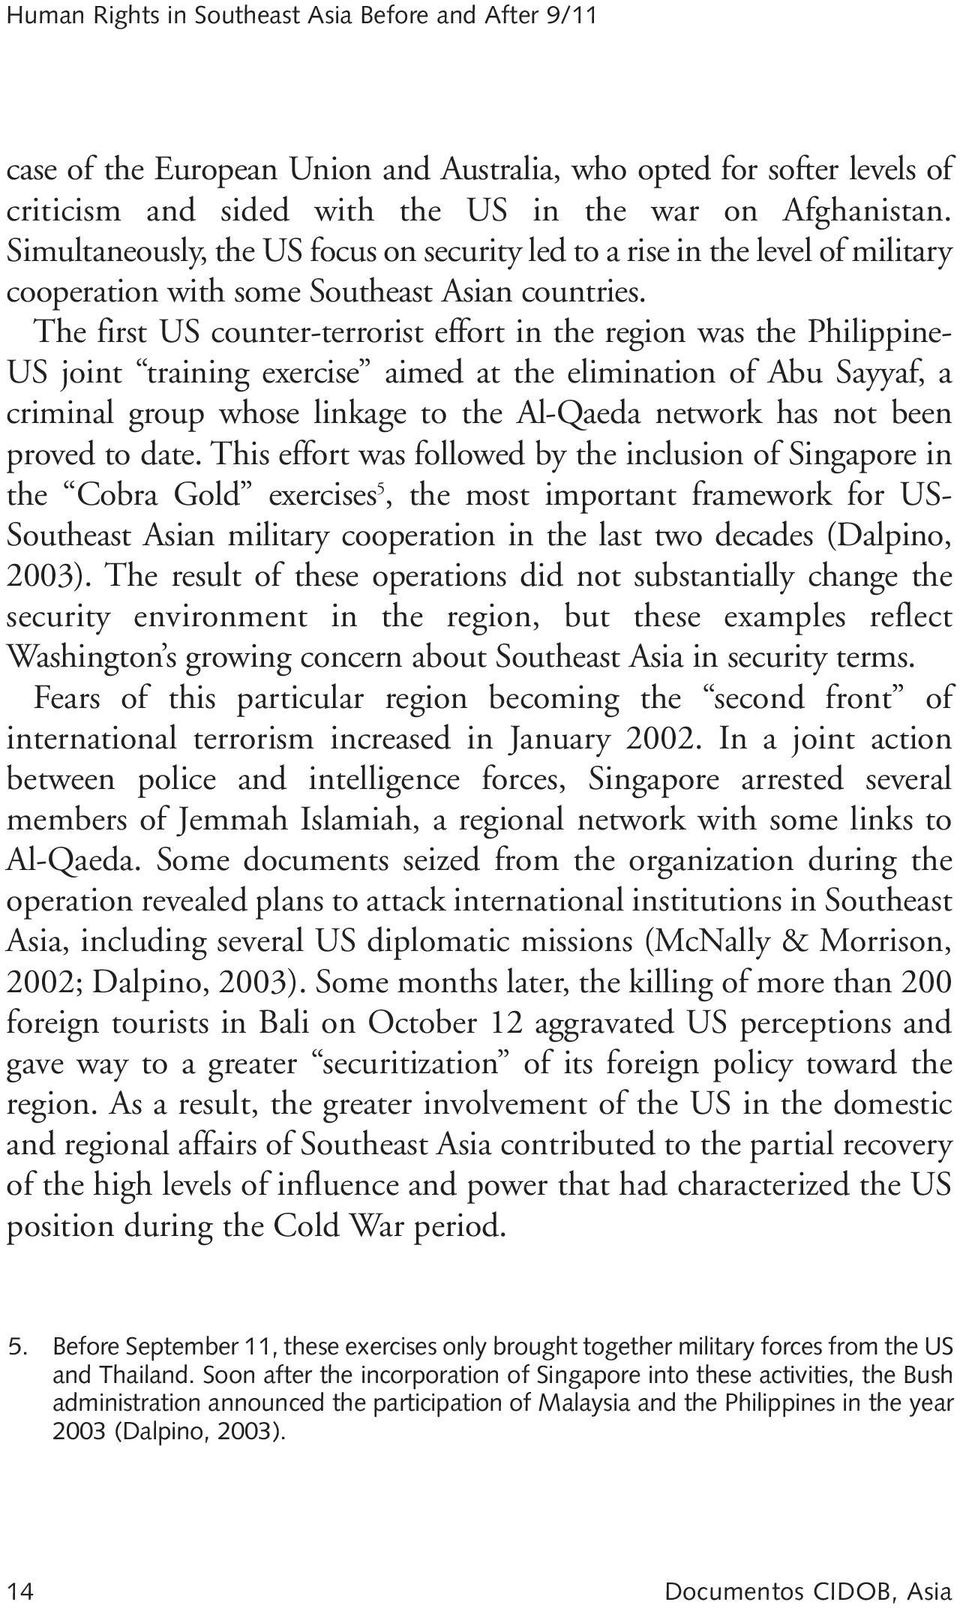 The first US counter-terrorist effort in the region was the Philippine- US joint training exercise aimed at the elimination of Abu Sayyaf, a criminal group whose linkage to the Al-Qaeda network has